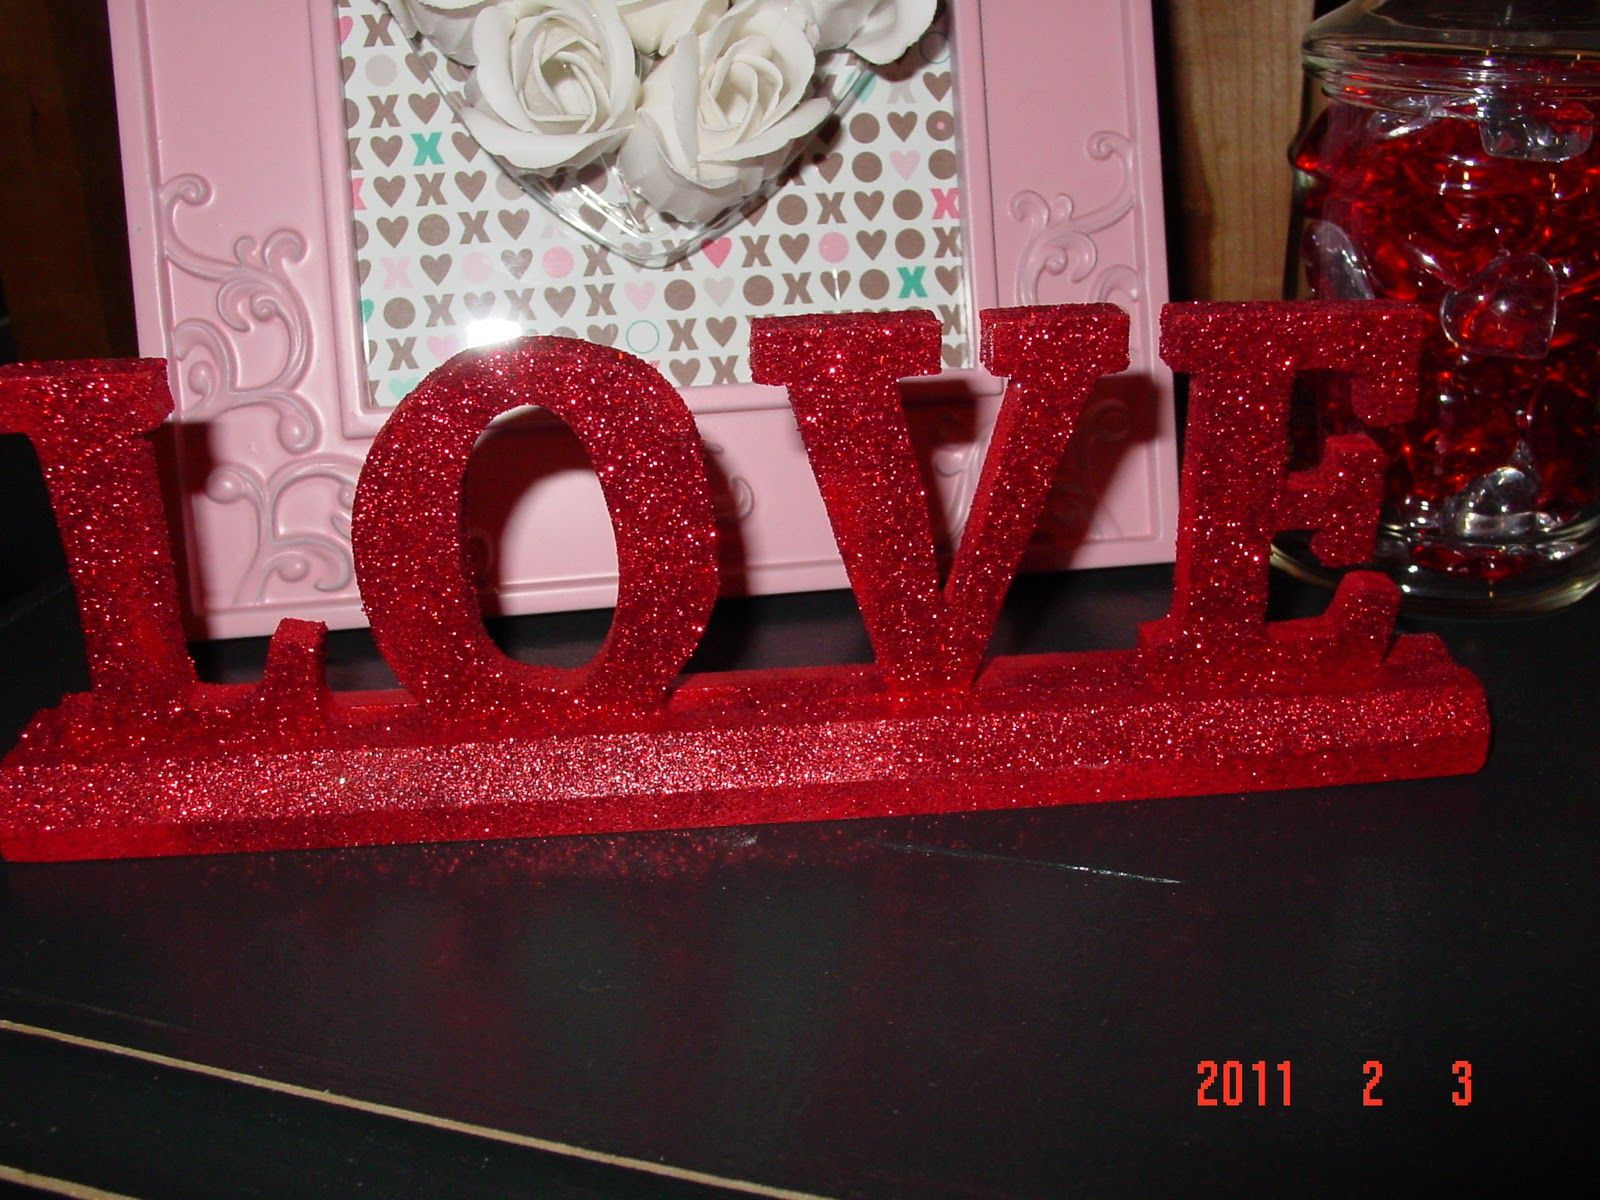 dollar tree valentine | Easy Peasy Lemon Squeezy! Super sparkly and glittery Valentines day ...